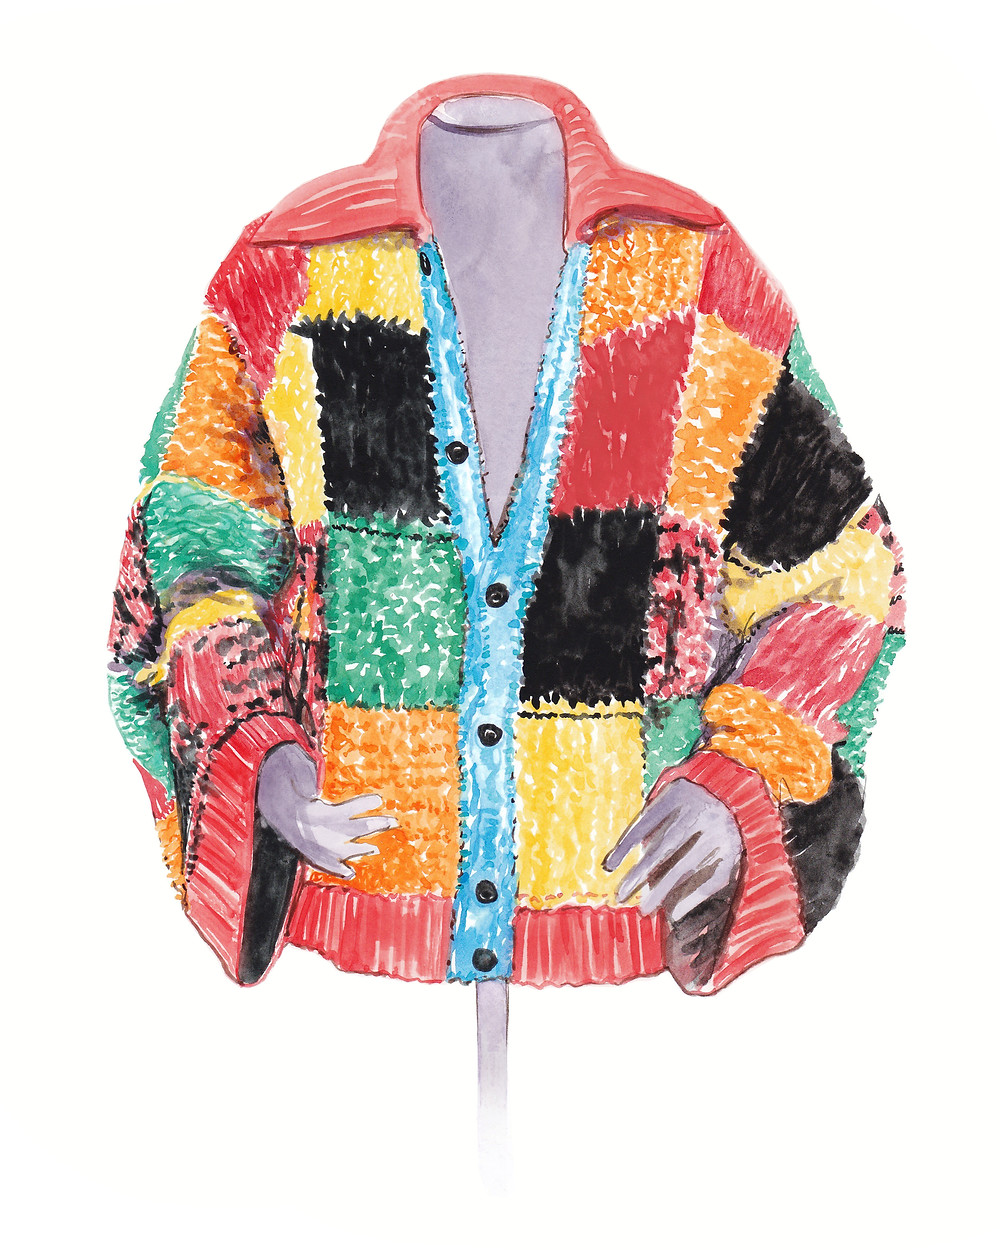 The JW Anderson cardigan styled by Harry Styles is now part of the permanent collection of the V&A